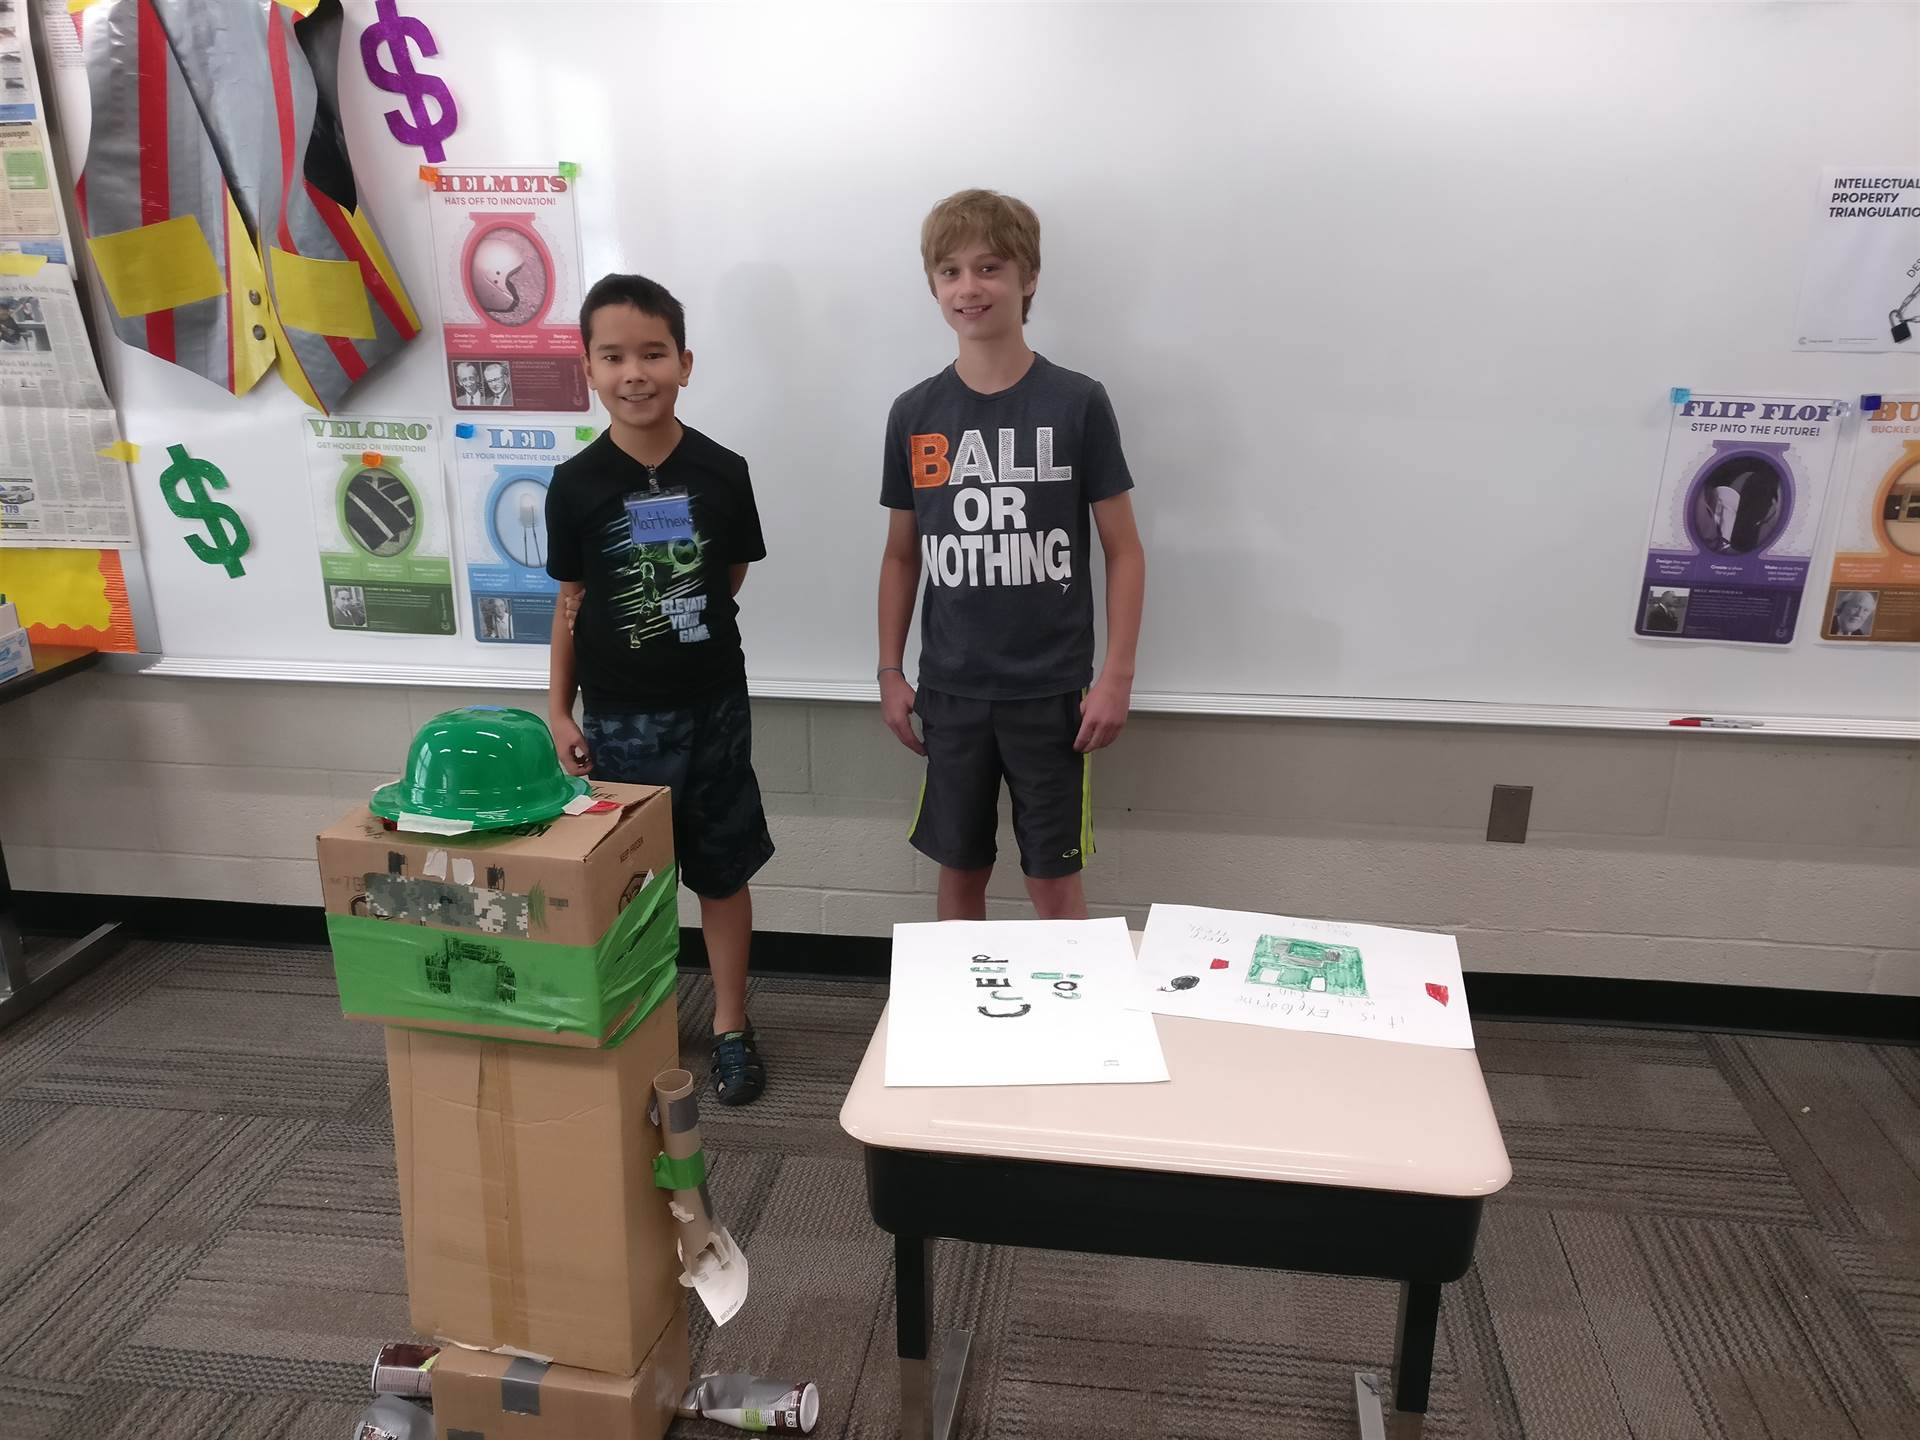 Students worked collaboratively to design and construct this product in the Duct Tape Billionaire mo